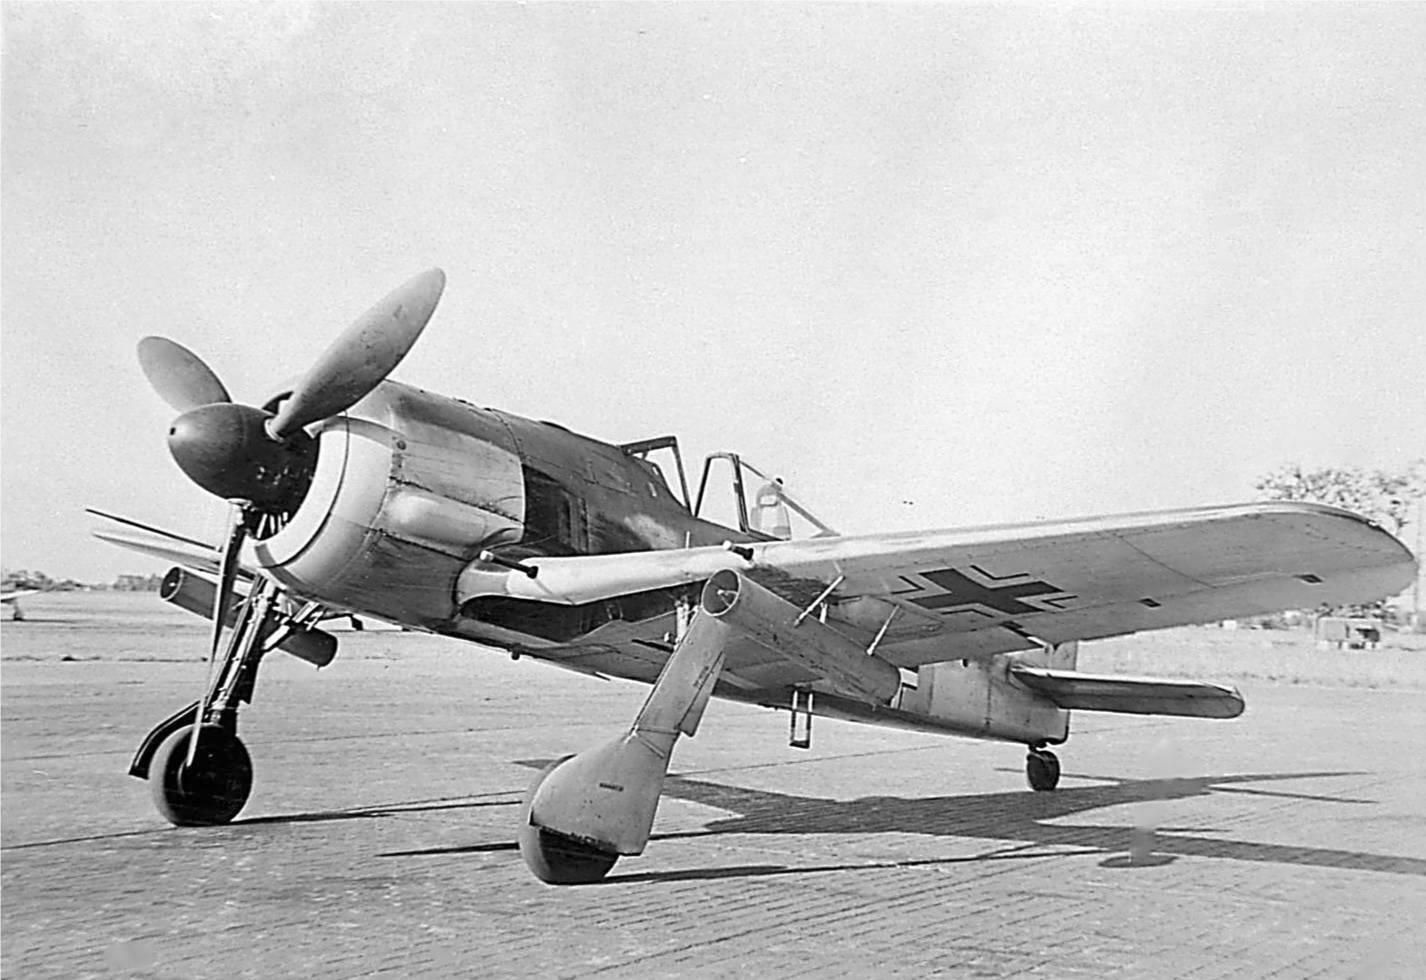 FW 190 A-4 R6 with WR 21 under the wings